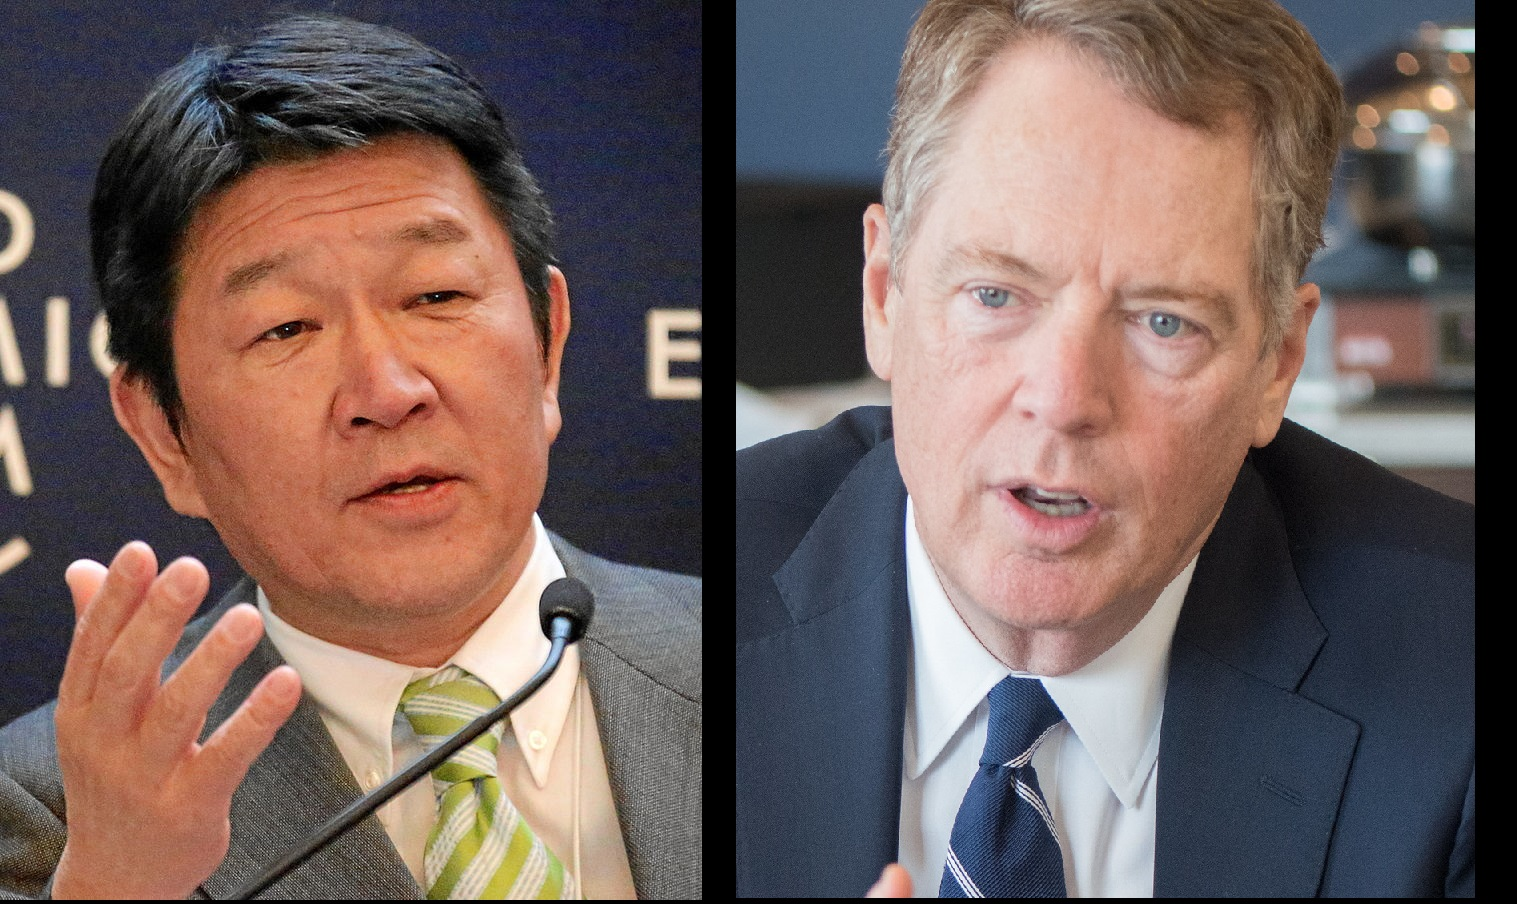 """According to reports, U.S. Trade Representative Robert Lighthizer (Image: USDA Photo by Tomasina Brown) urged the Japanese trade negotiator, Economic and Fiscal Policy Minister Toshimitsu Motegi, to """"announce something this time around."""" (Image: World Economic Forum/CC BY-SA 2.0)"""